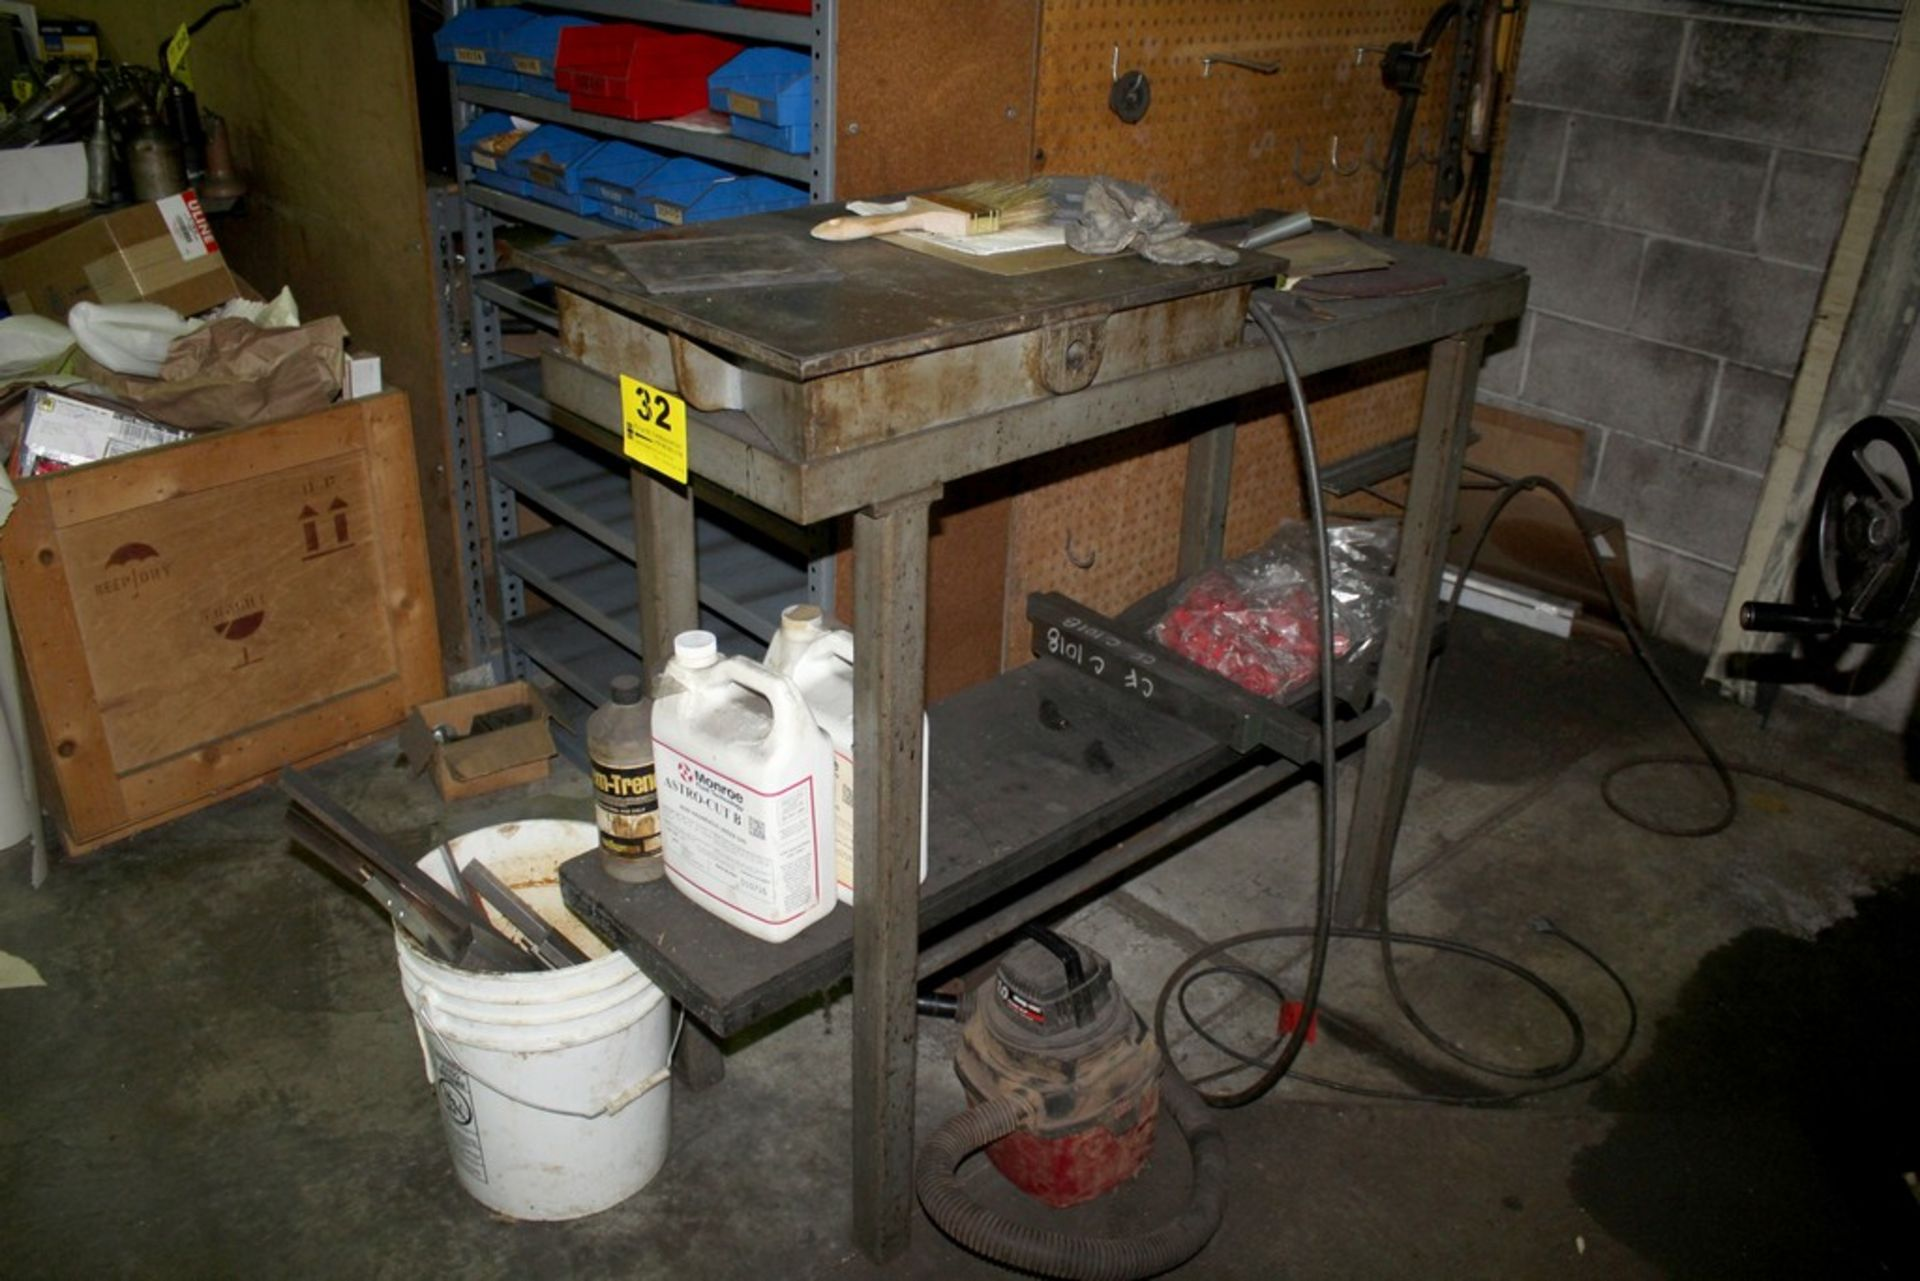 """Lot 32 - 24"""" X 20"""" CAST IRON SURFACE PLATE WITH HEAVY DUTY STEEL STAND"""